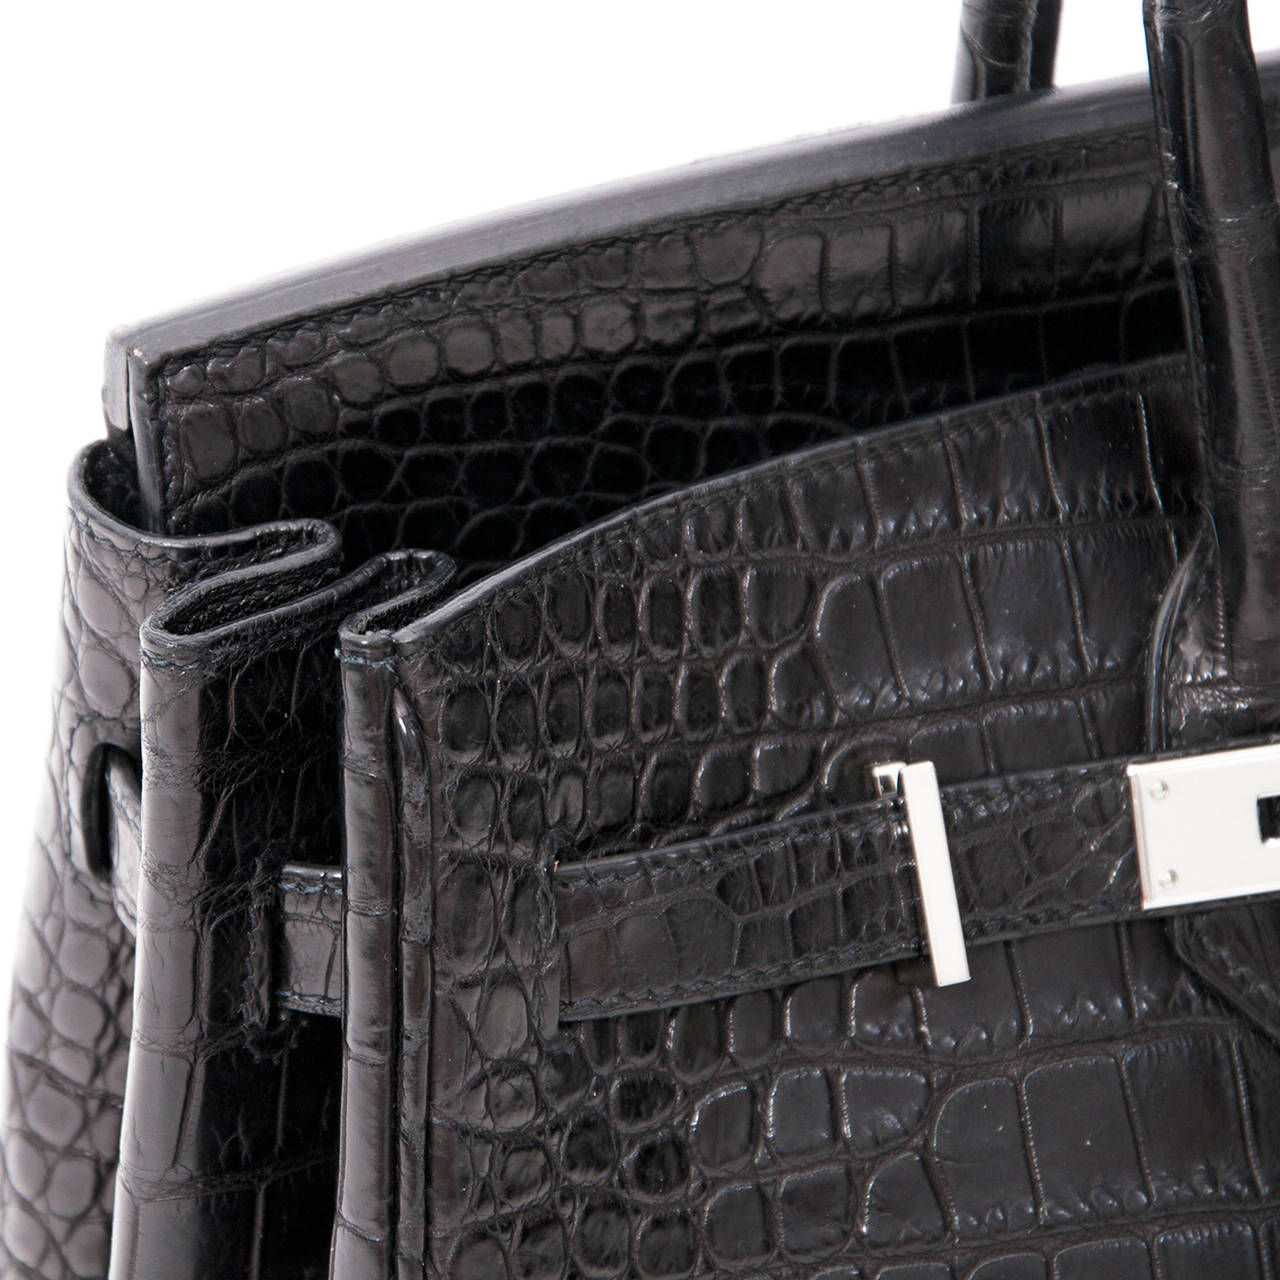 1857a698d55f Hermes Matte Black Porosus Crocodile Birkin 35 Incredibly rare and hard to  find this exotic Matte